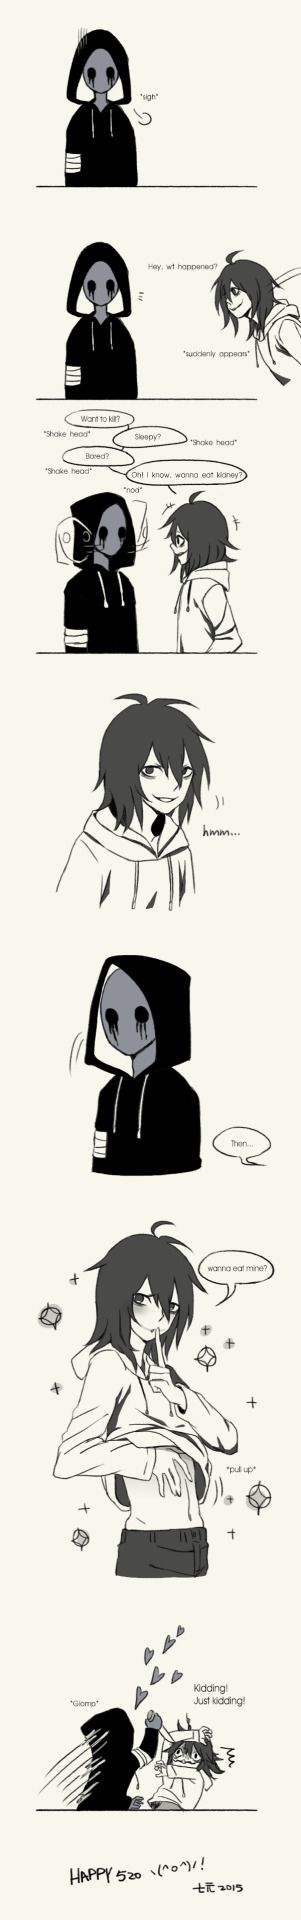 eyeless jack | Tumblr i dont ship but its hilarious xD